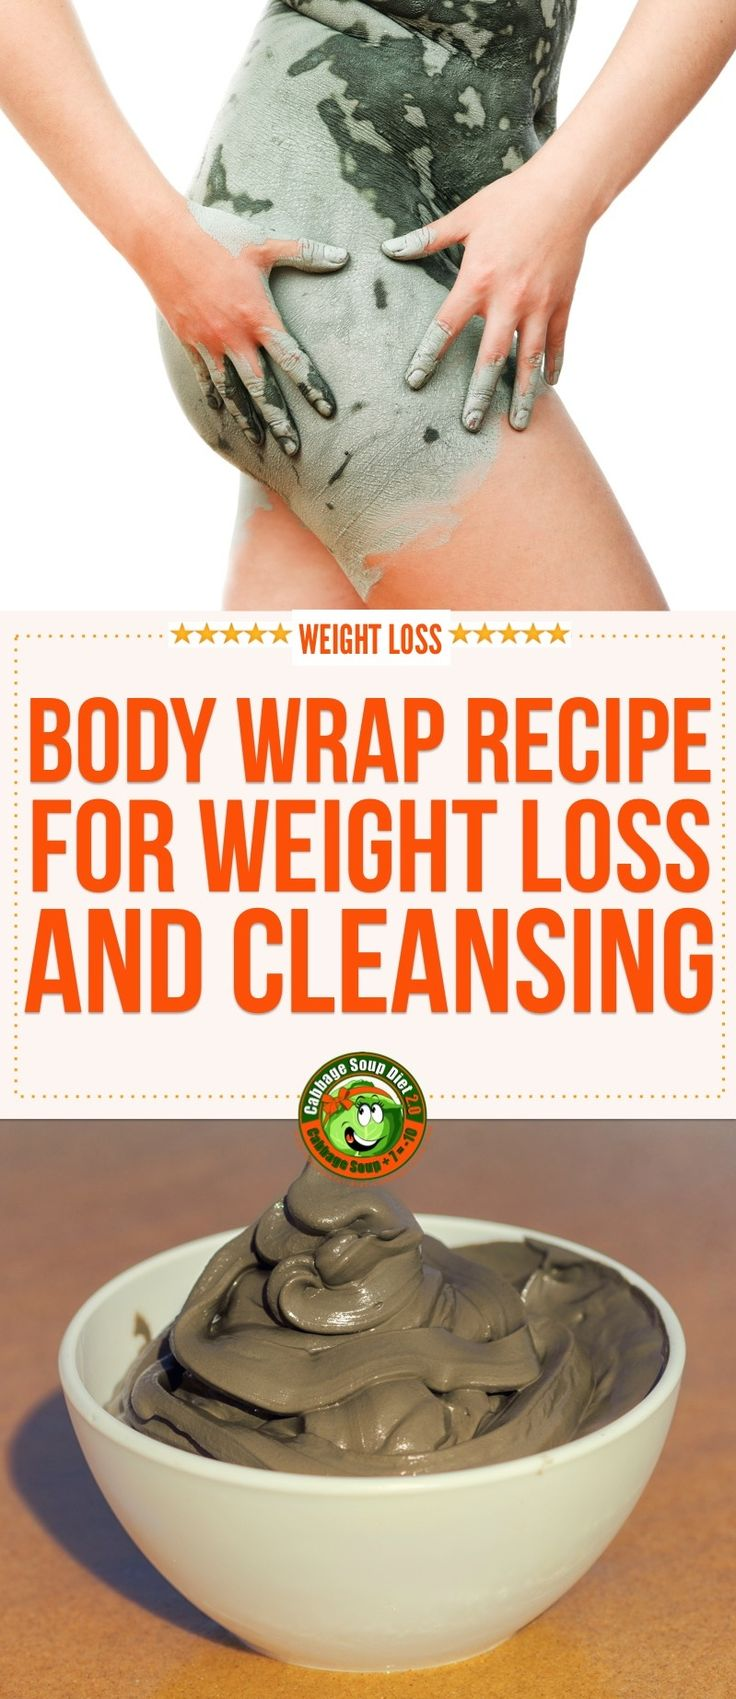 body wrap recipe for weight loss and cleansing - what to expect